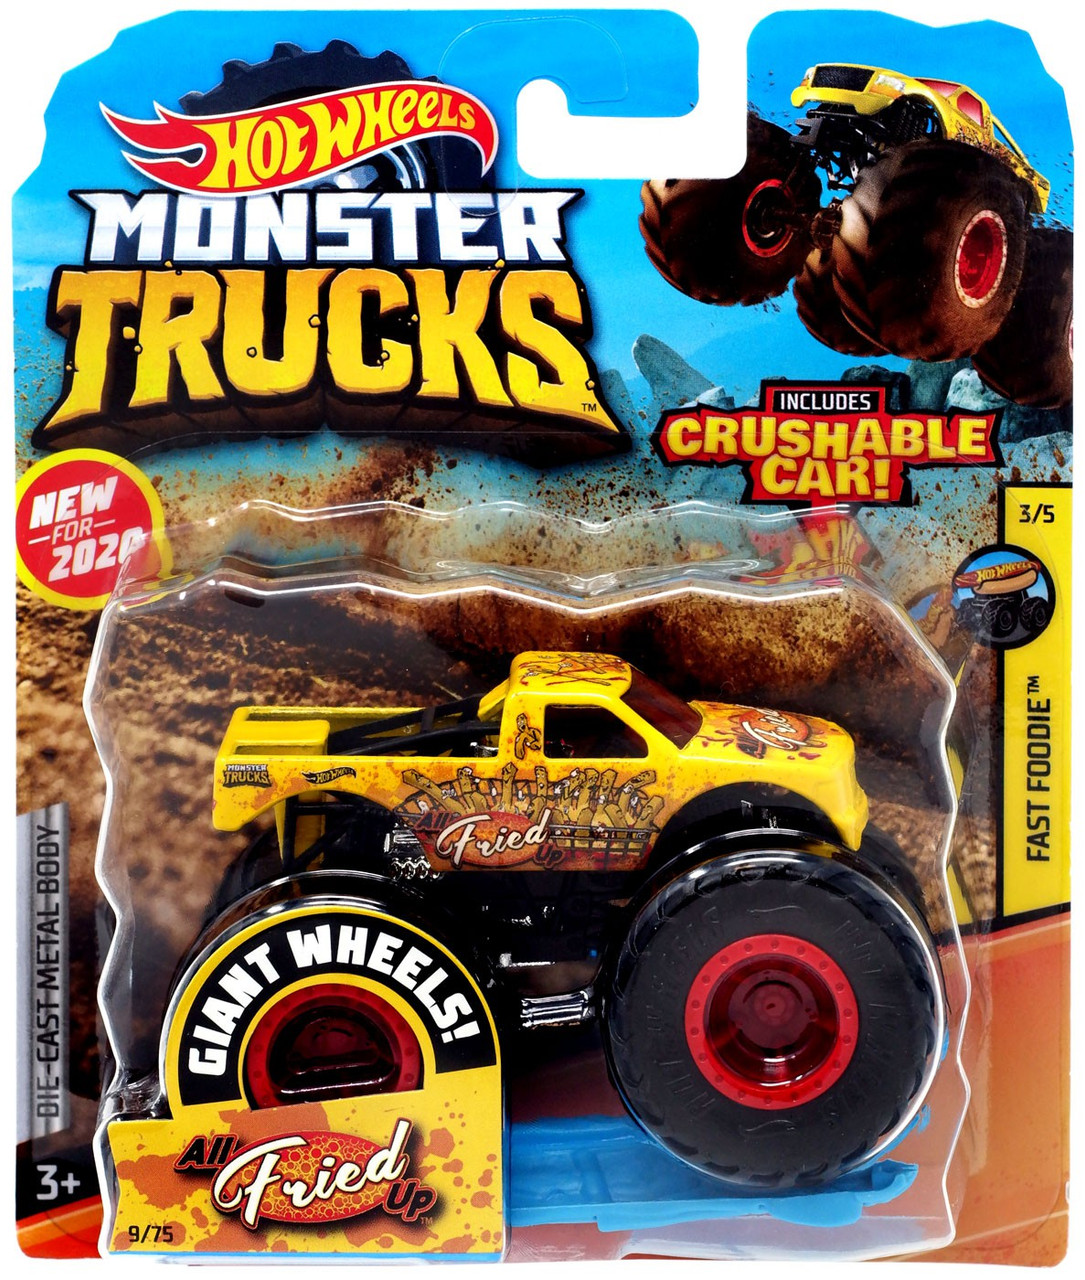 Hot Wheels Monster Trucks Fast Foodie All Fried Up 164 Diecast Car Mattel Toys Toywiz